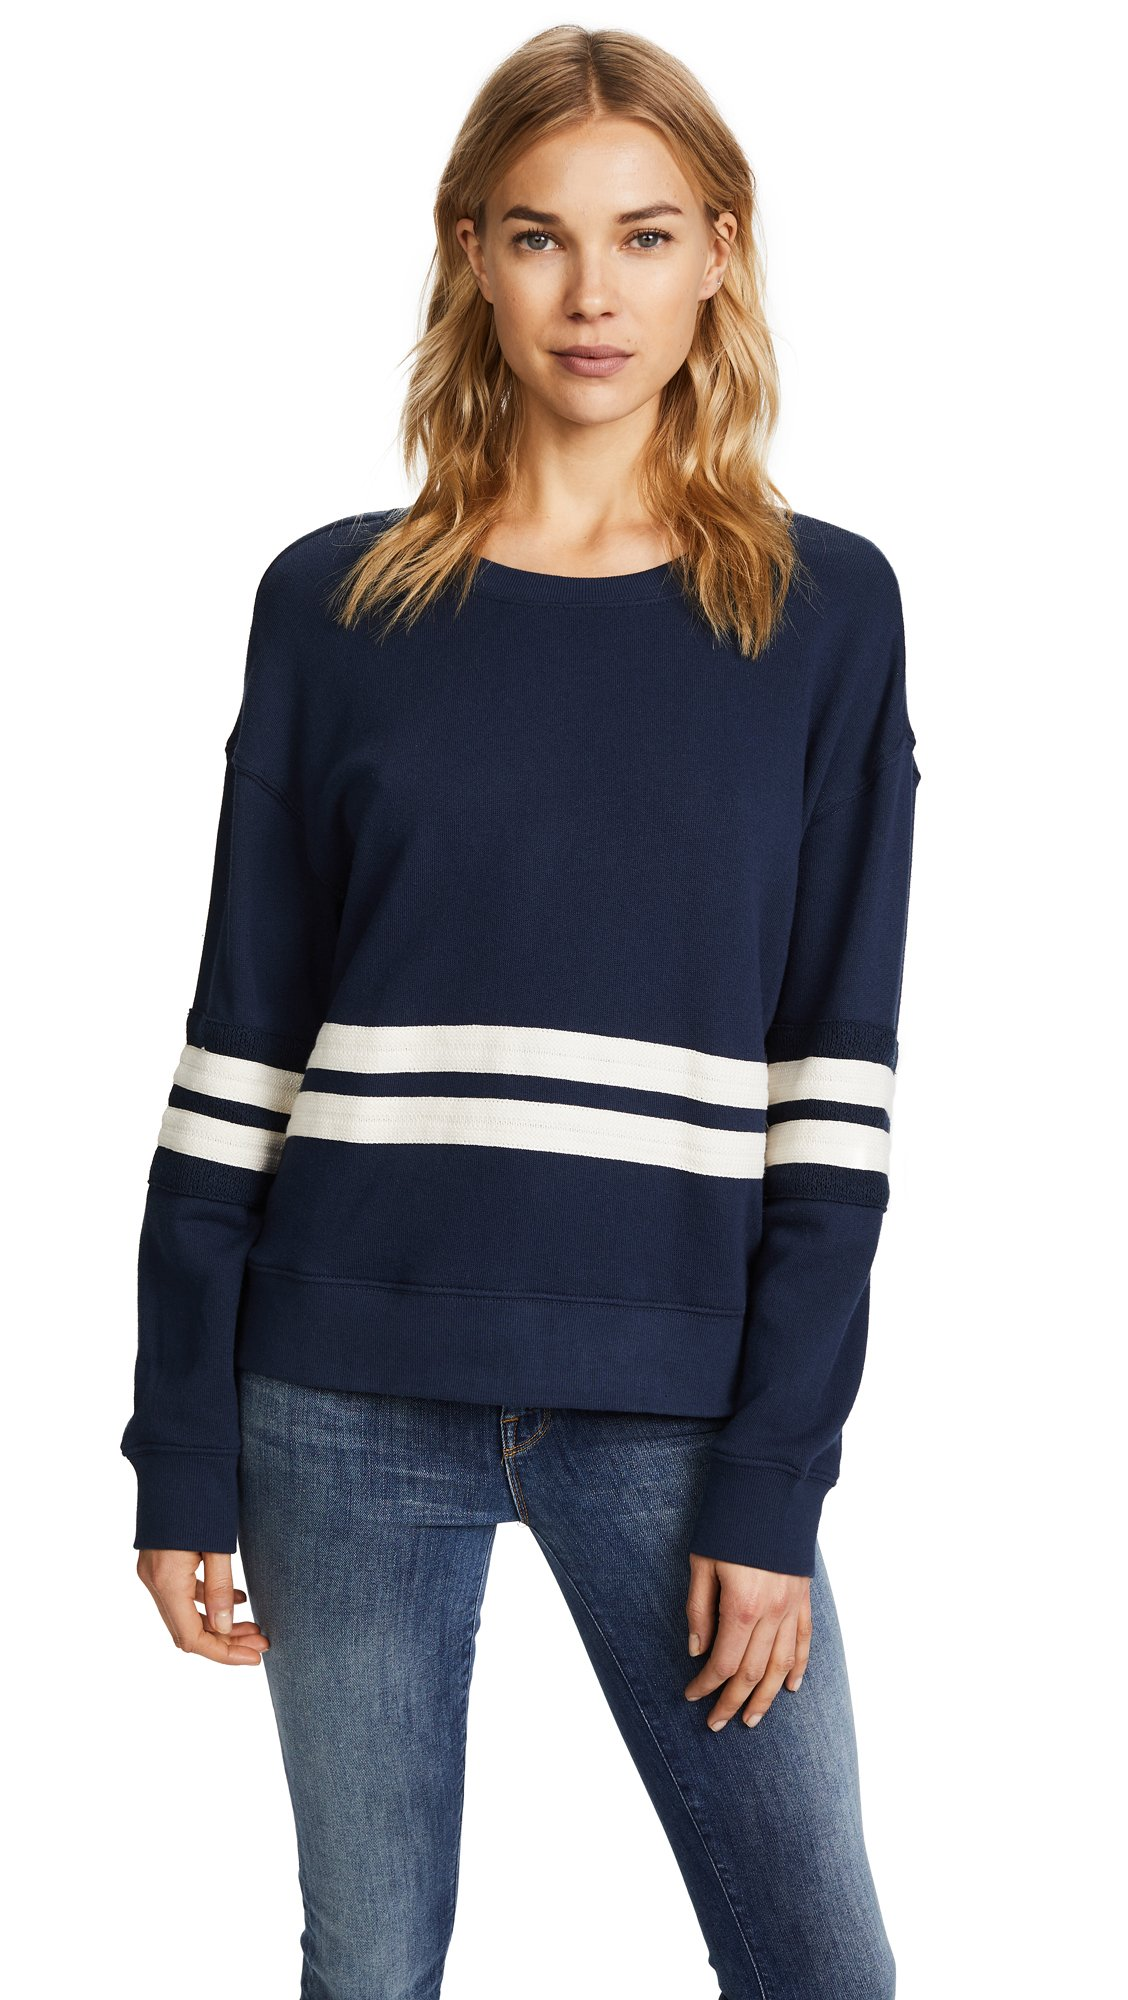 Splendid Women's Seabrook Active Pullover, Navy/Off White, XS